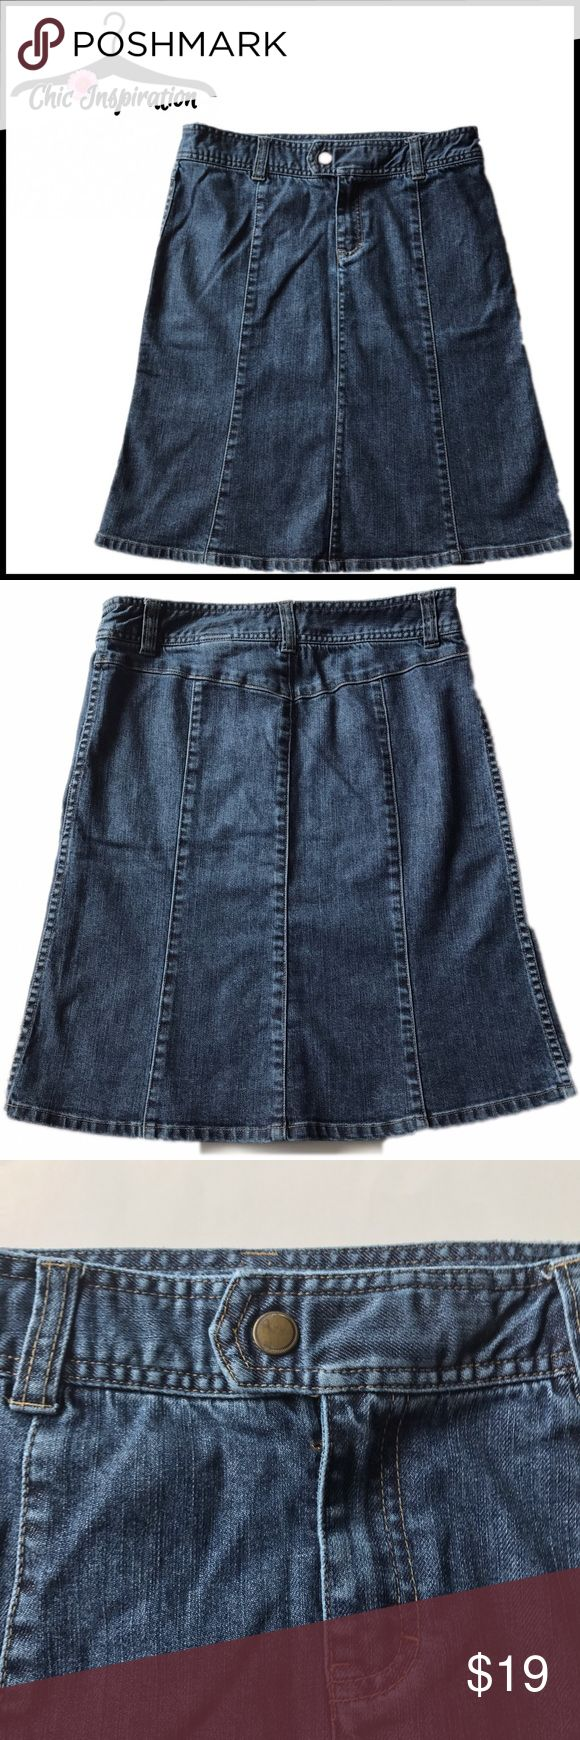 H&M Jean Skirt 99% cotton. Front button and zipper. See wear at the waist on the hem in the photos. Snap button. H&M Skirts A-Line or Full